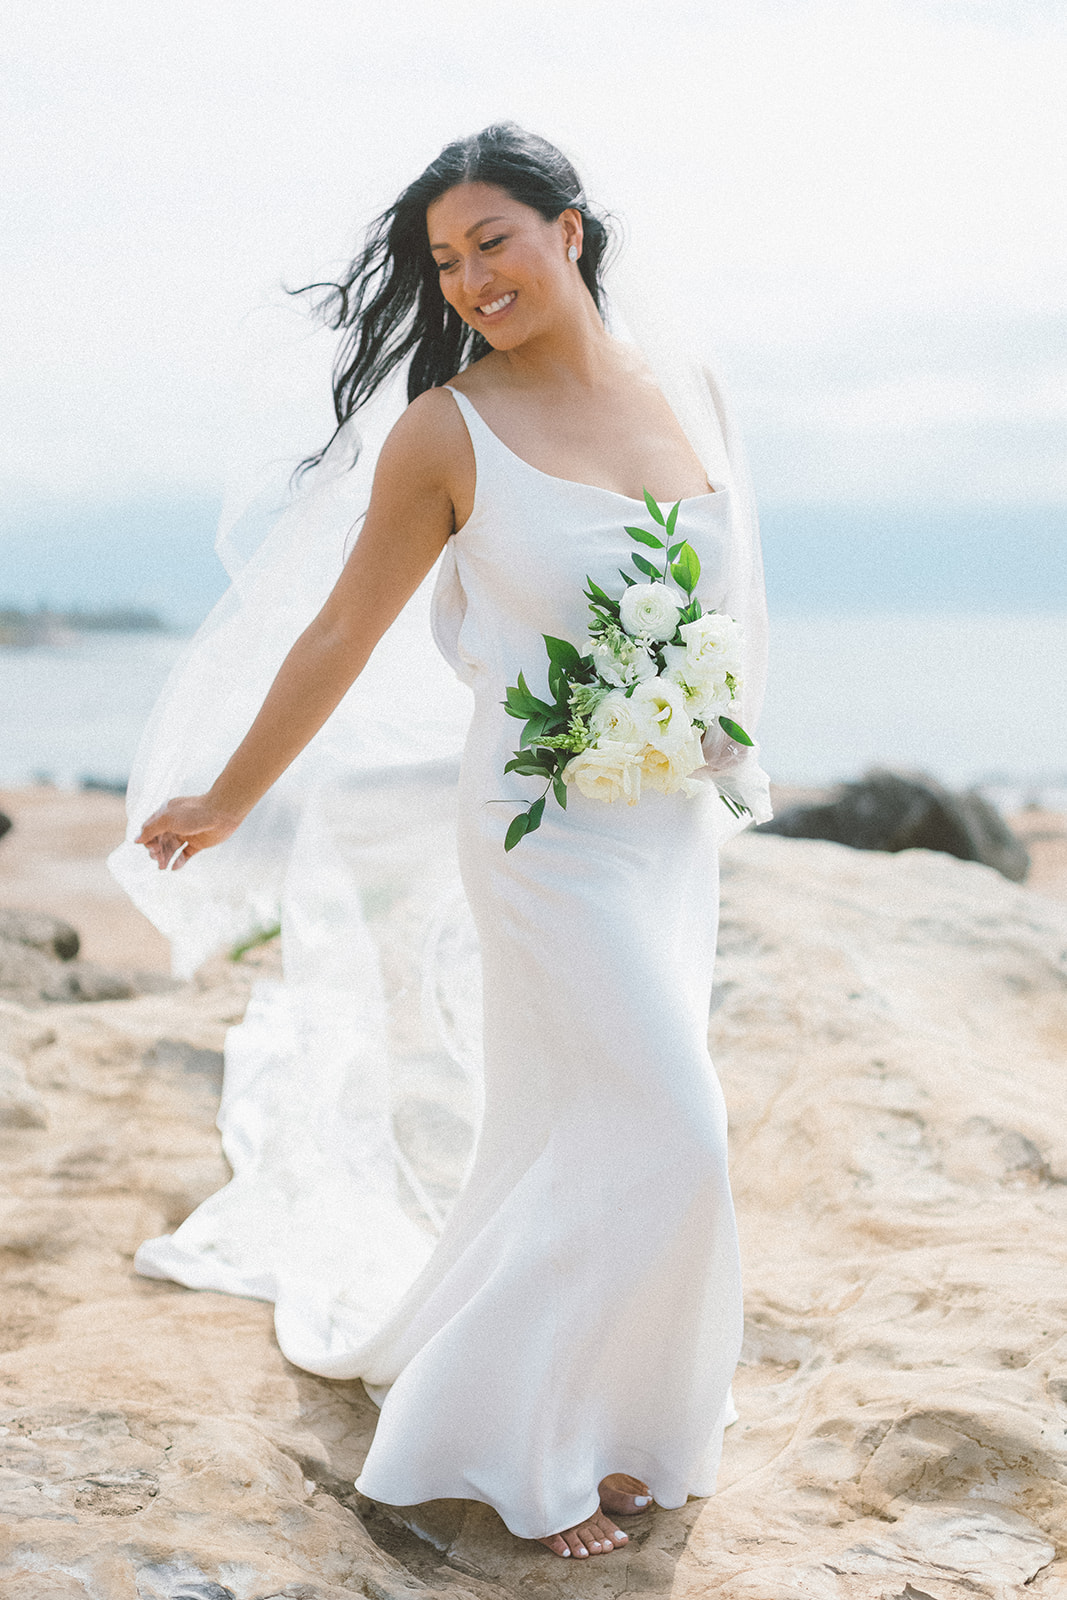 Haiku Mill Luxe Maui Wedding20190625_0185.jpg